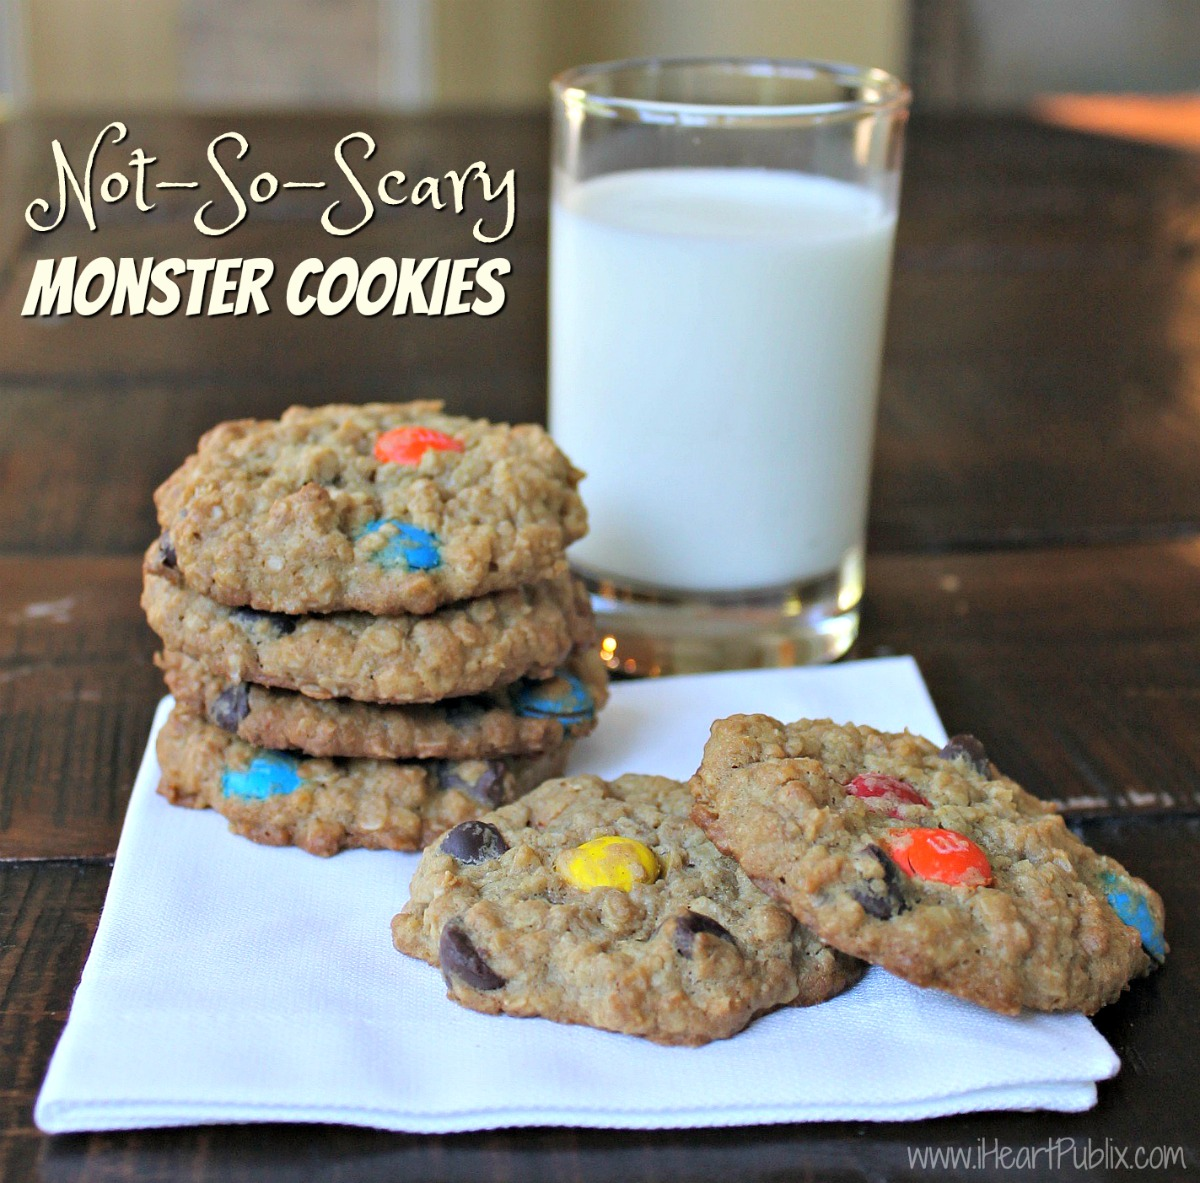 Not-So-Scary Monster Cookies